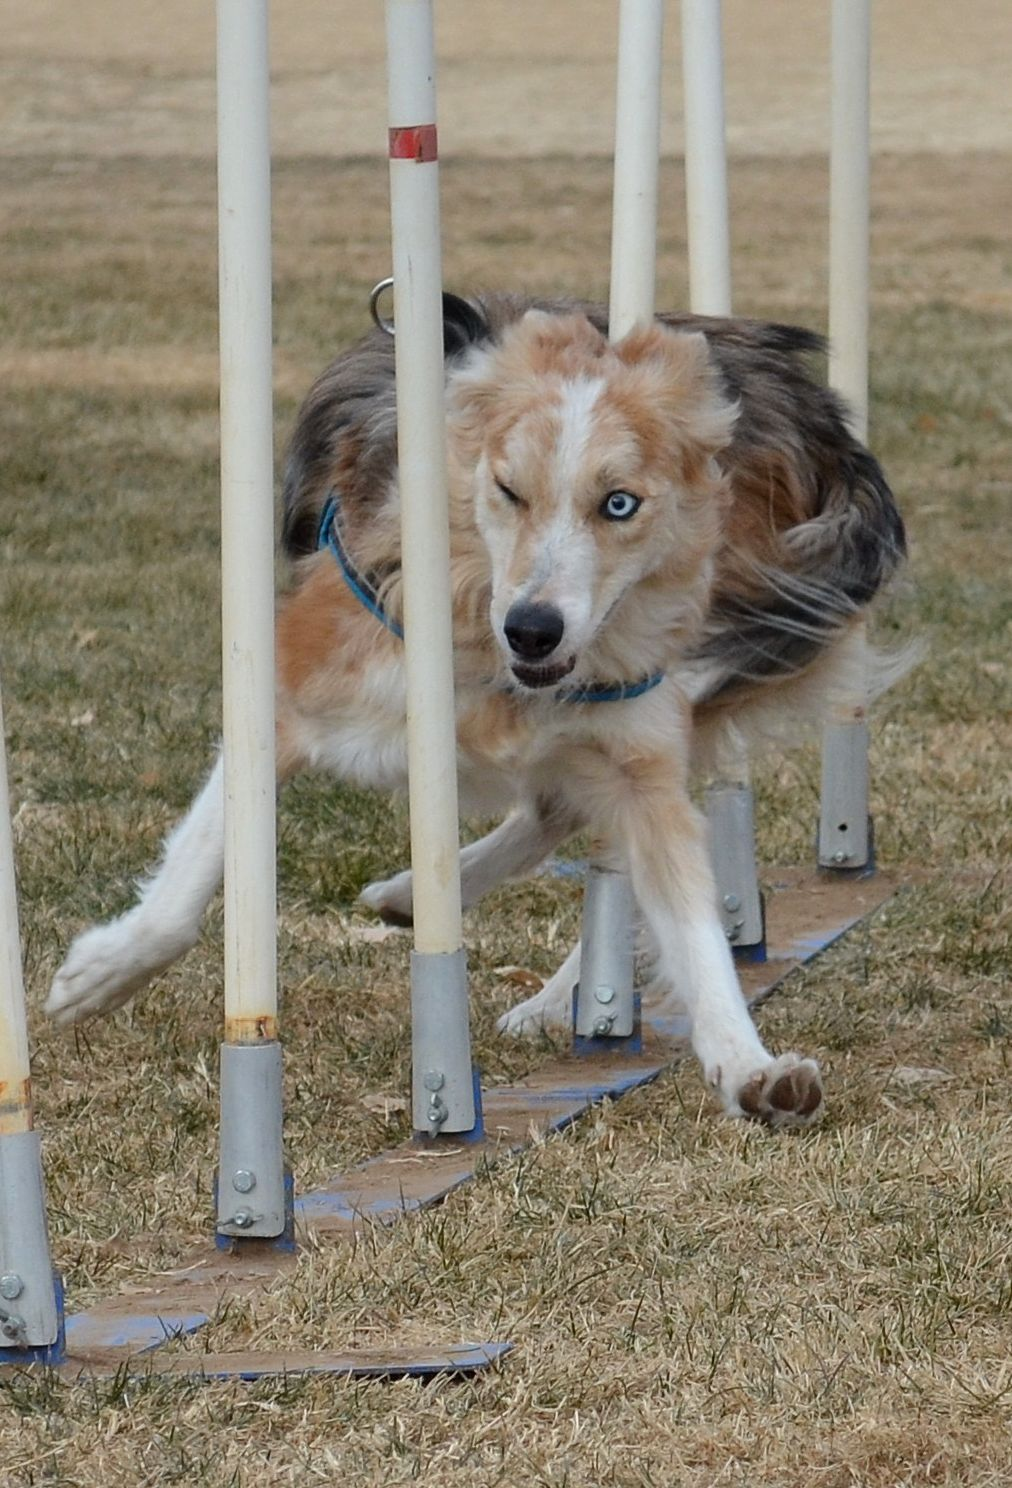 A picture of my border collie practicing